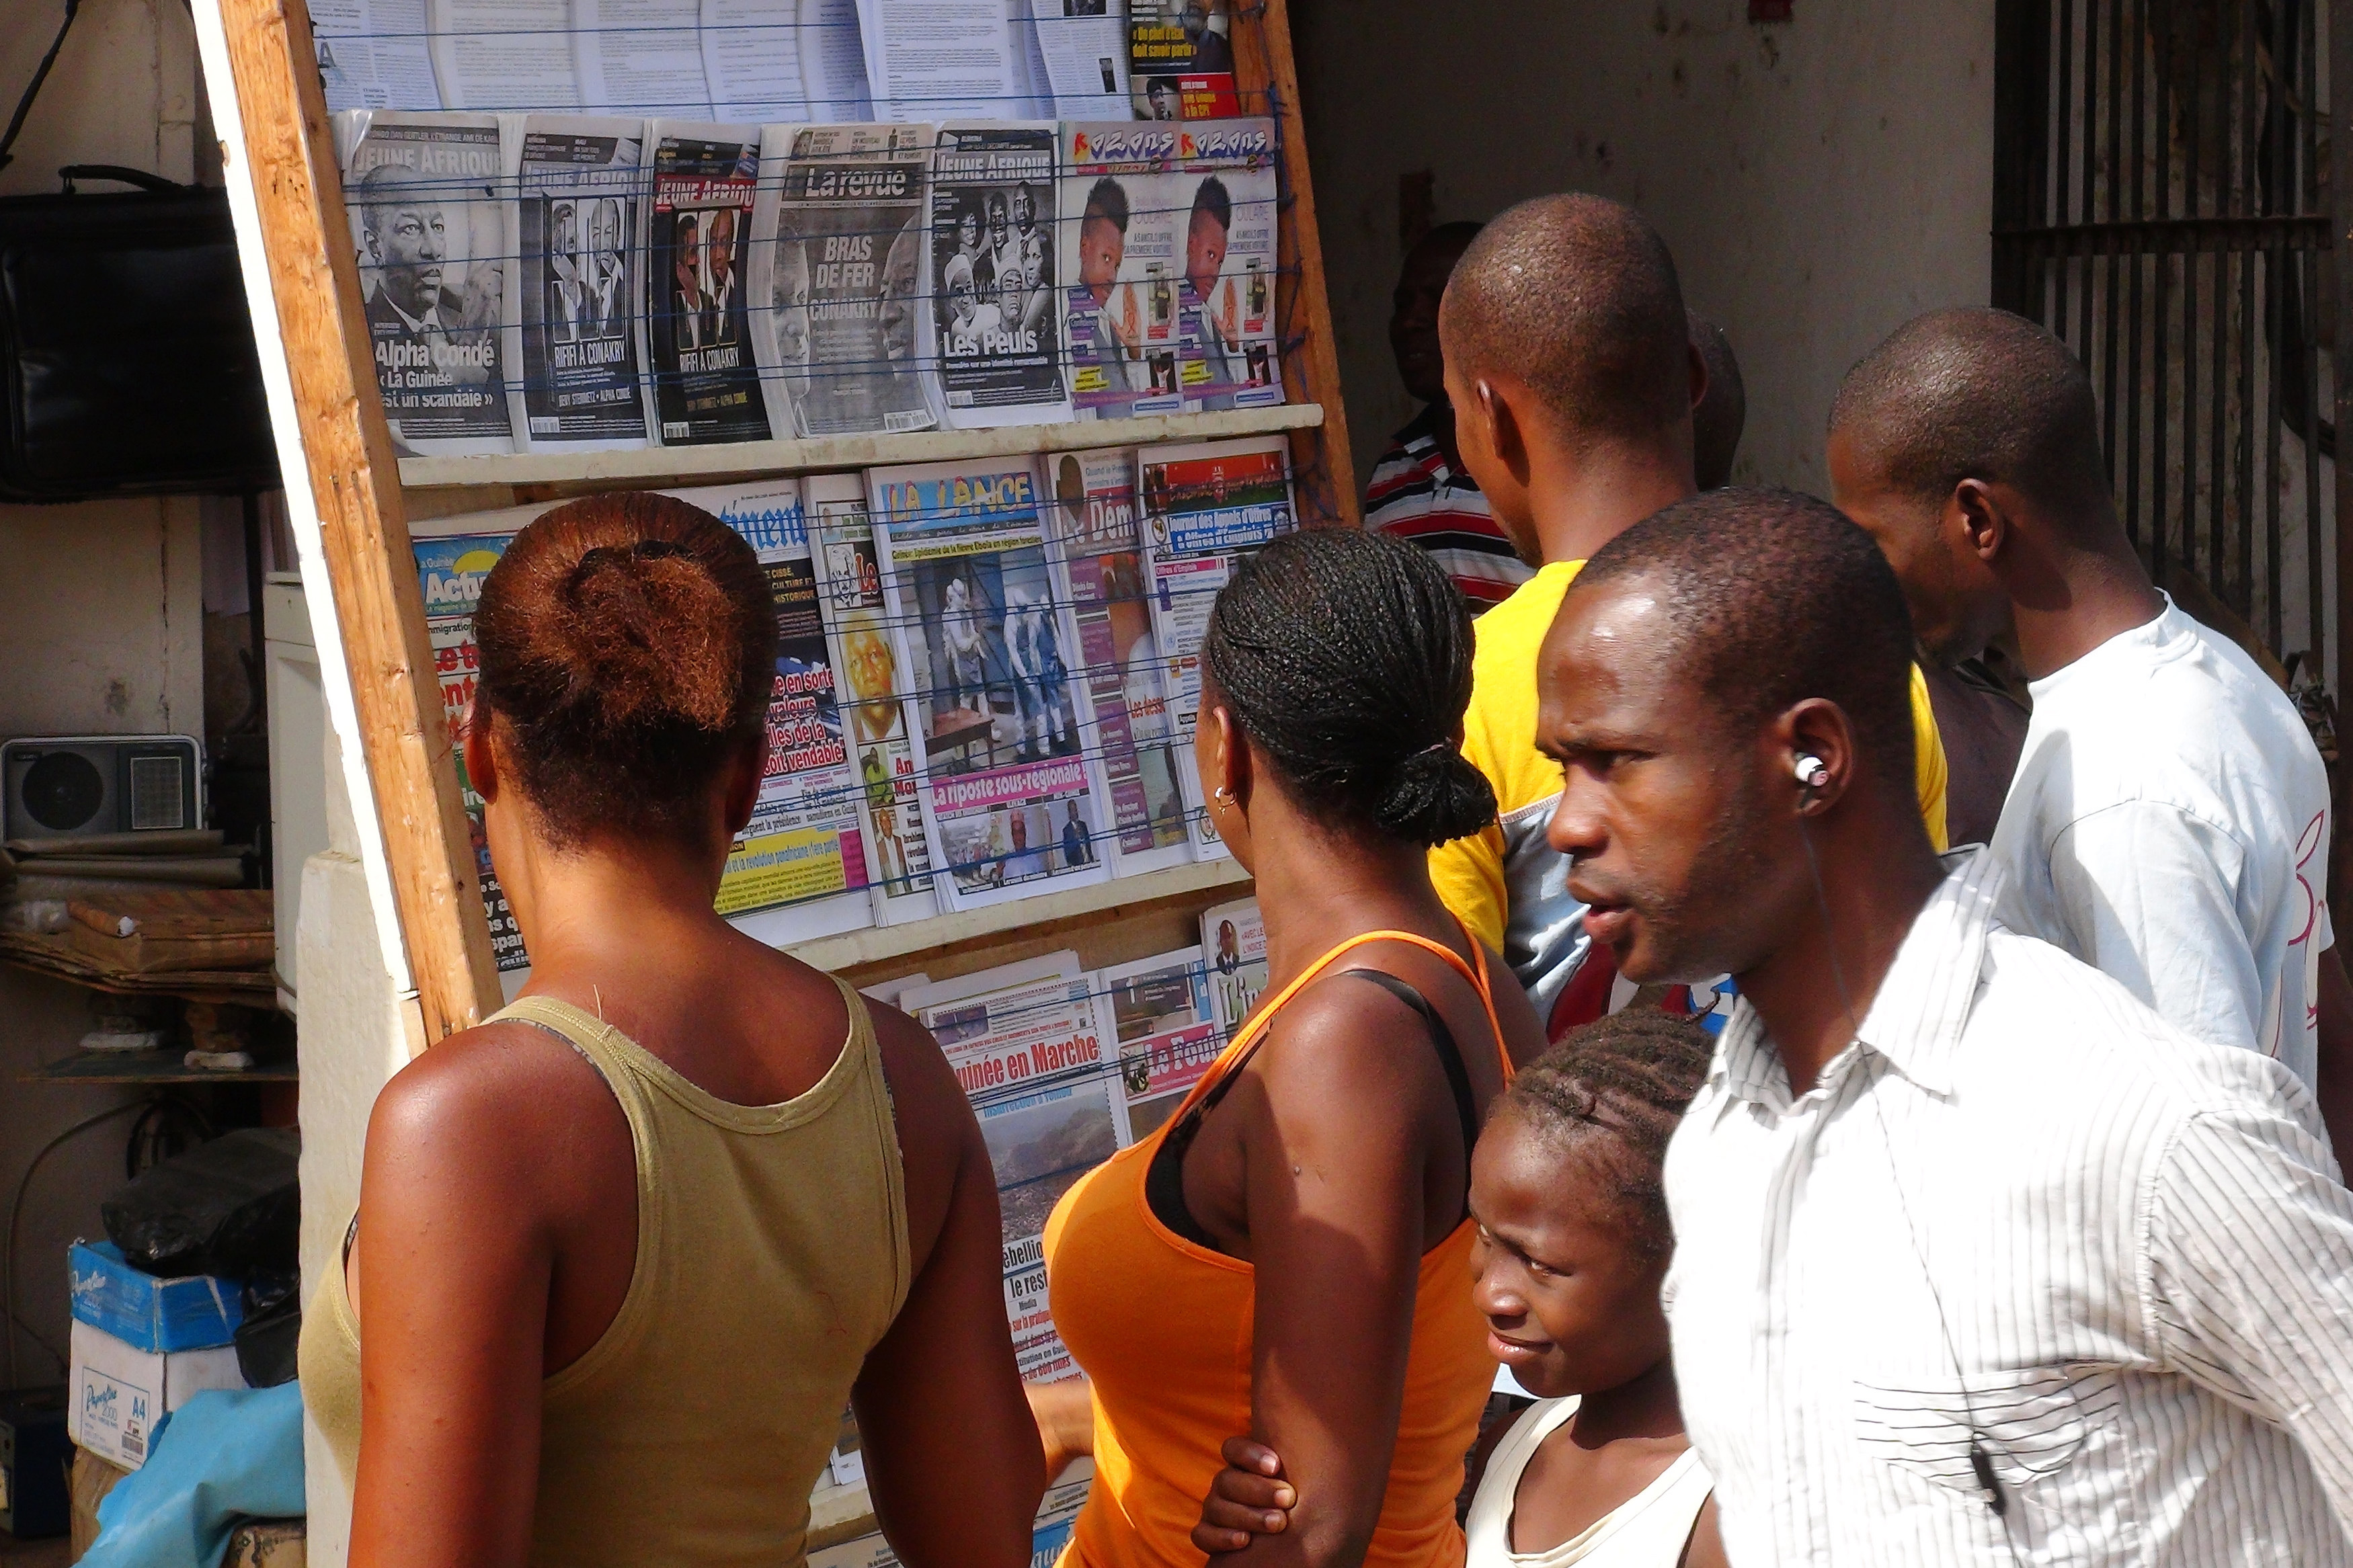 News of the spread of the ebola virus has residents of Guinea's capital Conakry on edge.